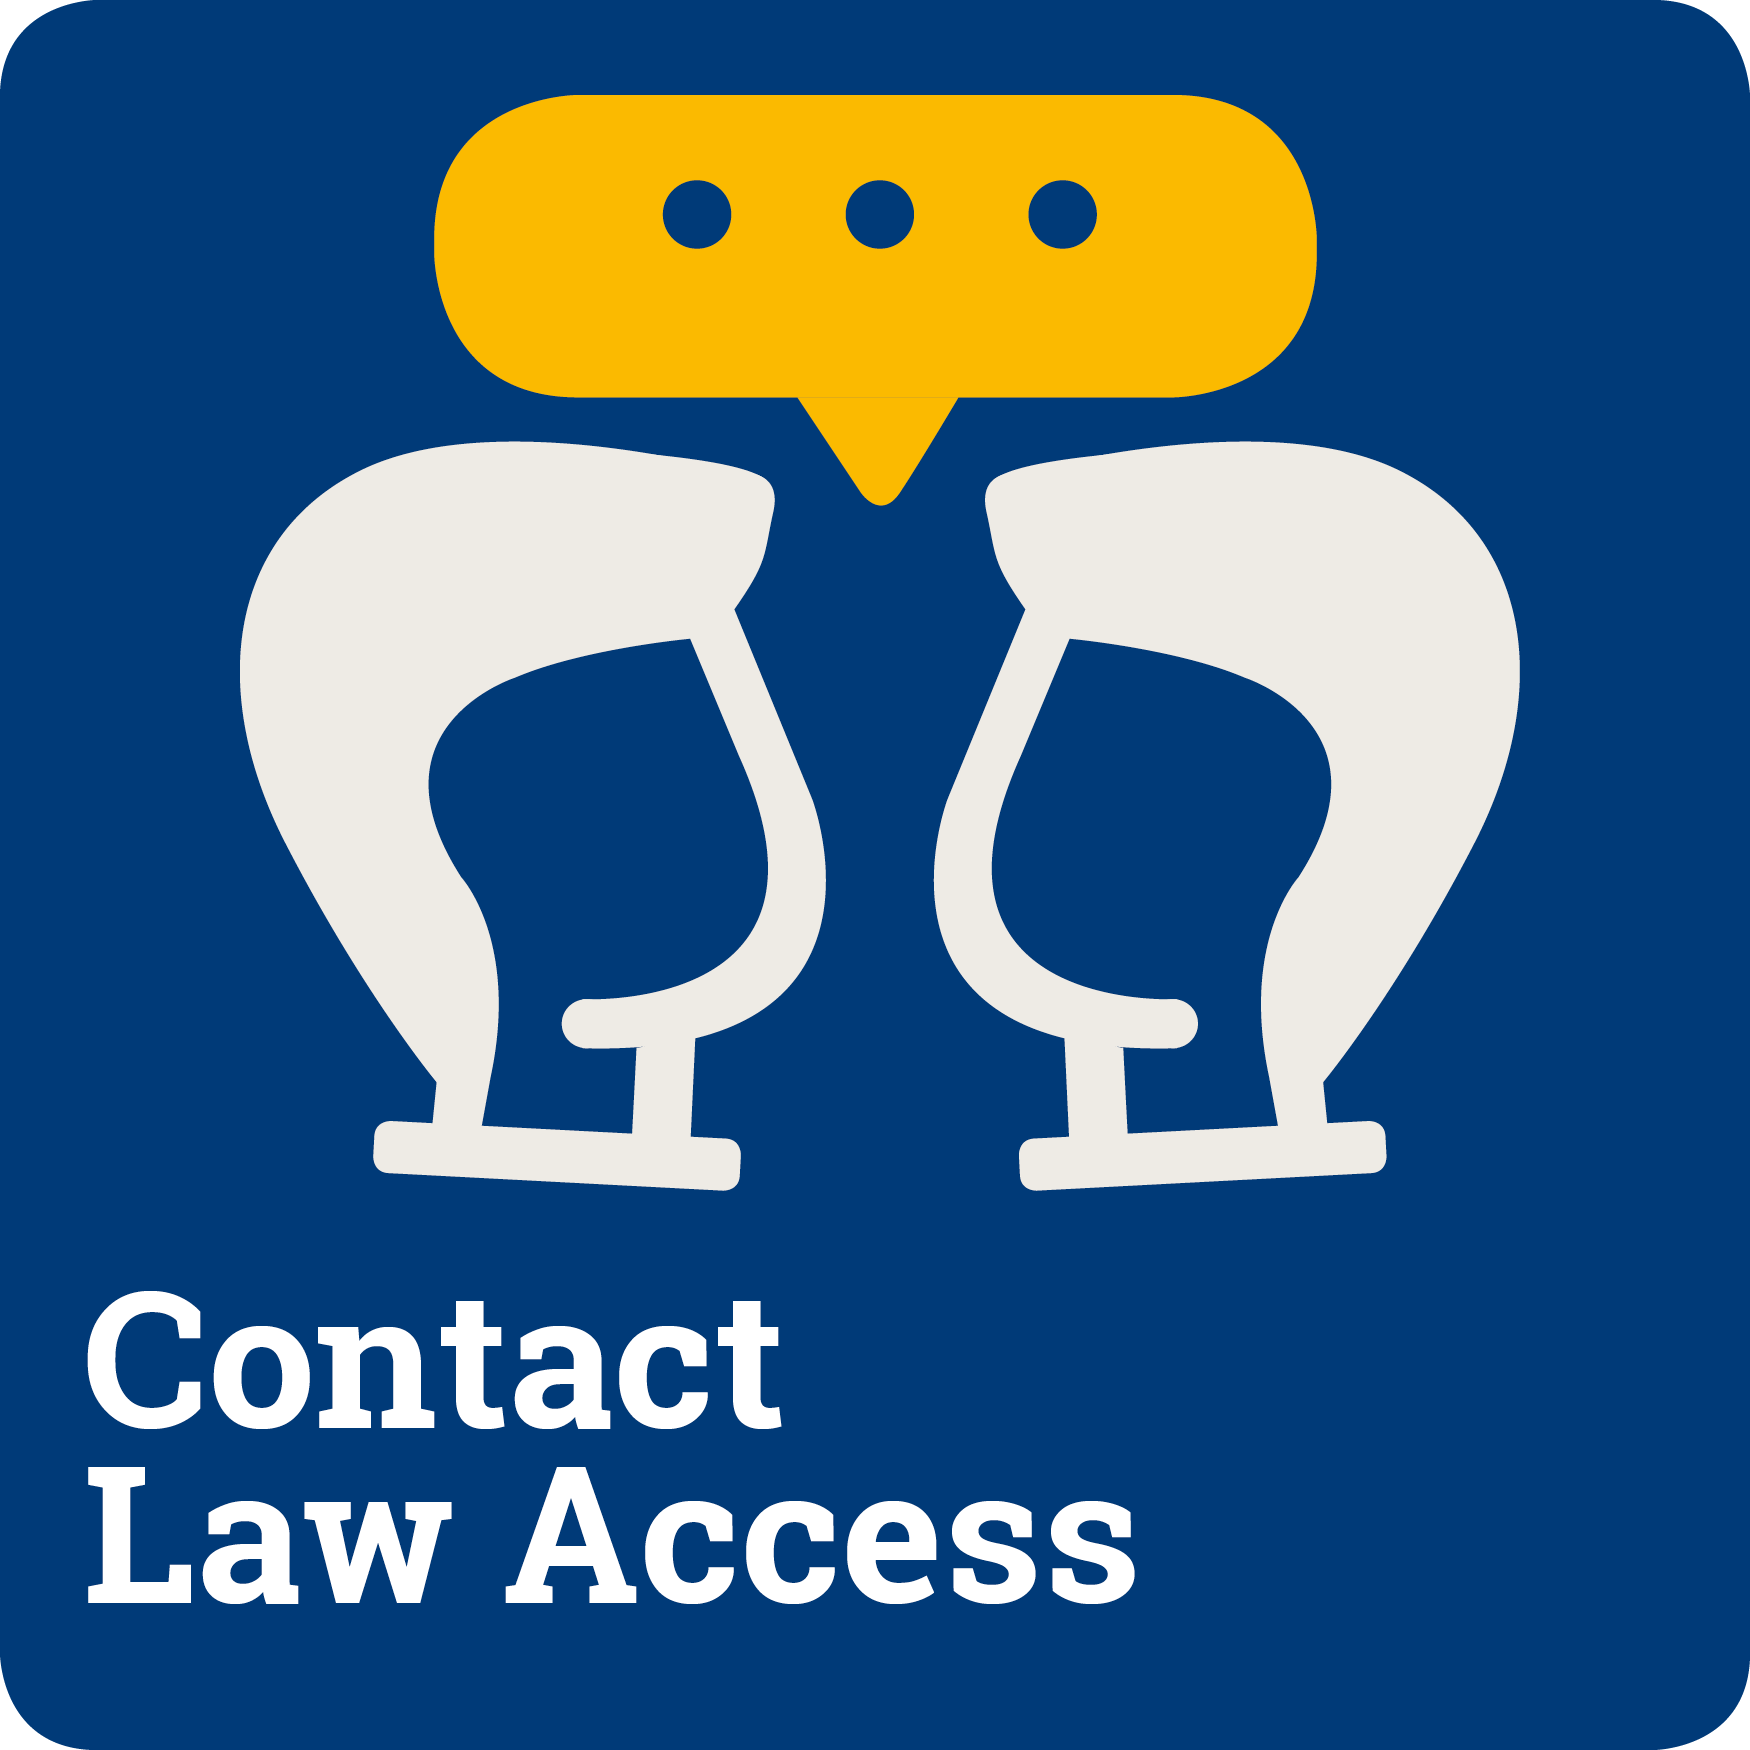 Contact law access